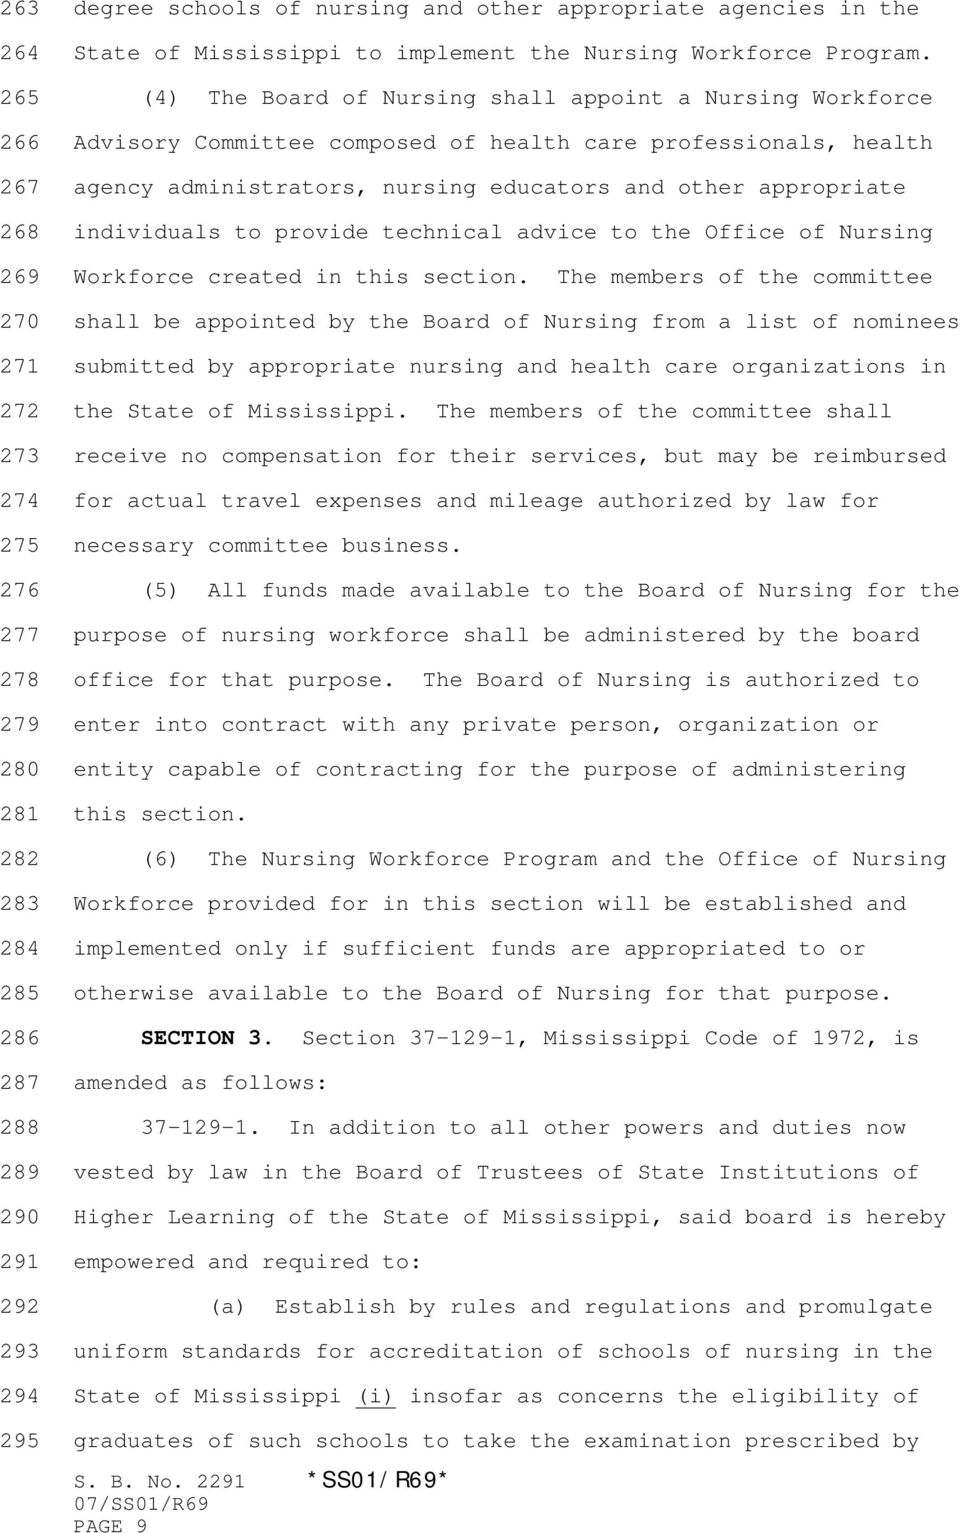 (4) The Board of Nursing shall appoint a Nursing Workforce Advisory Committee composed of health care professionals, health agency administrators, nursing educators and other appropriate individuals